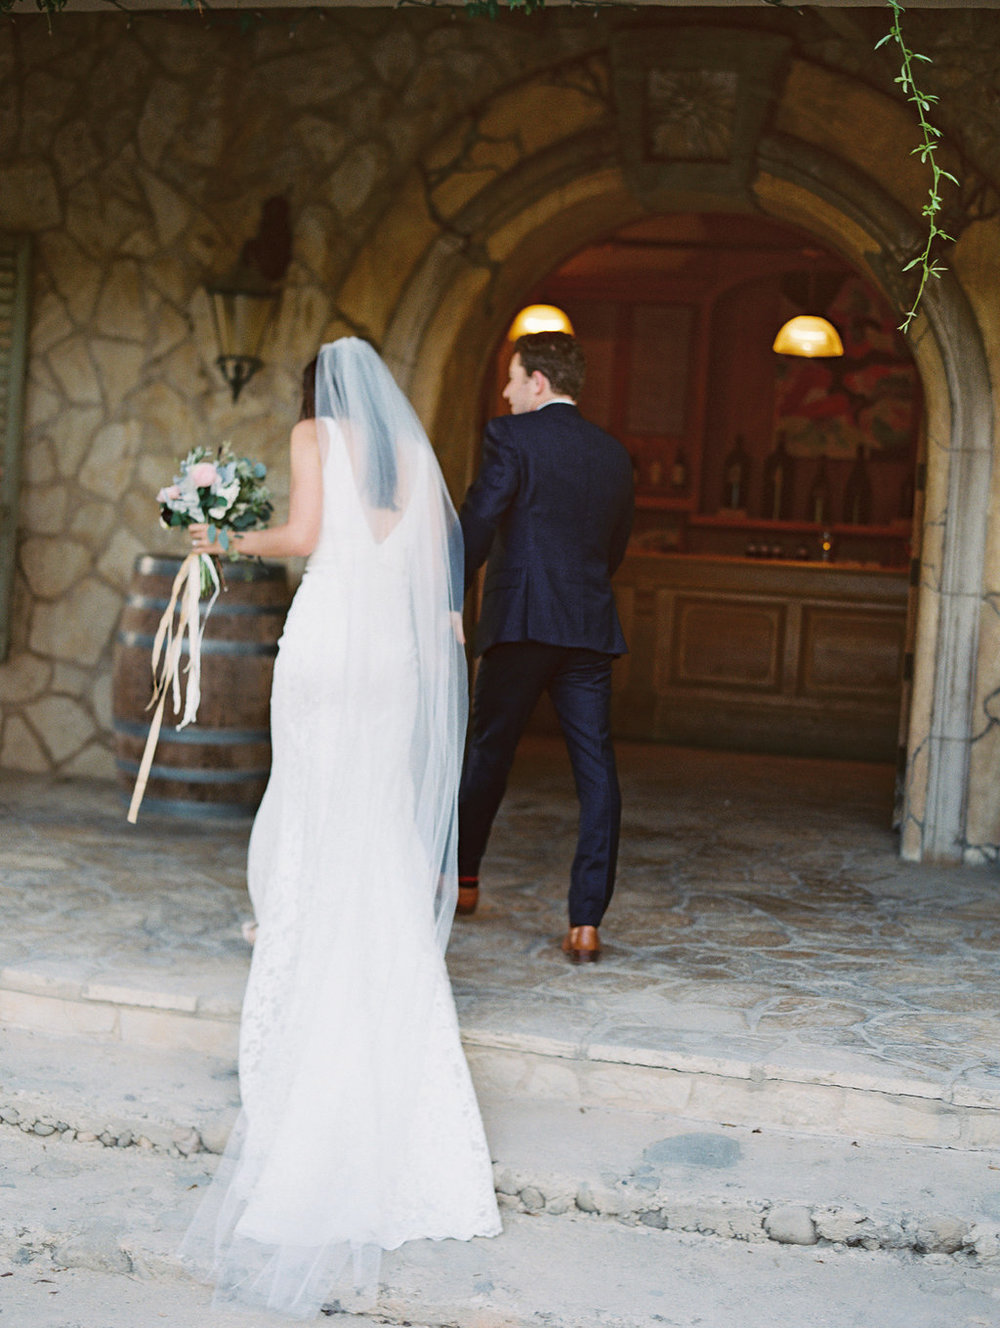 santabarbarawedding.com | Photo: Lavender and Twine | Santa Ynez winery wedding location | Sunstone Winery